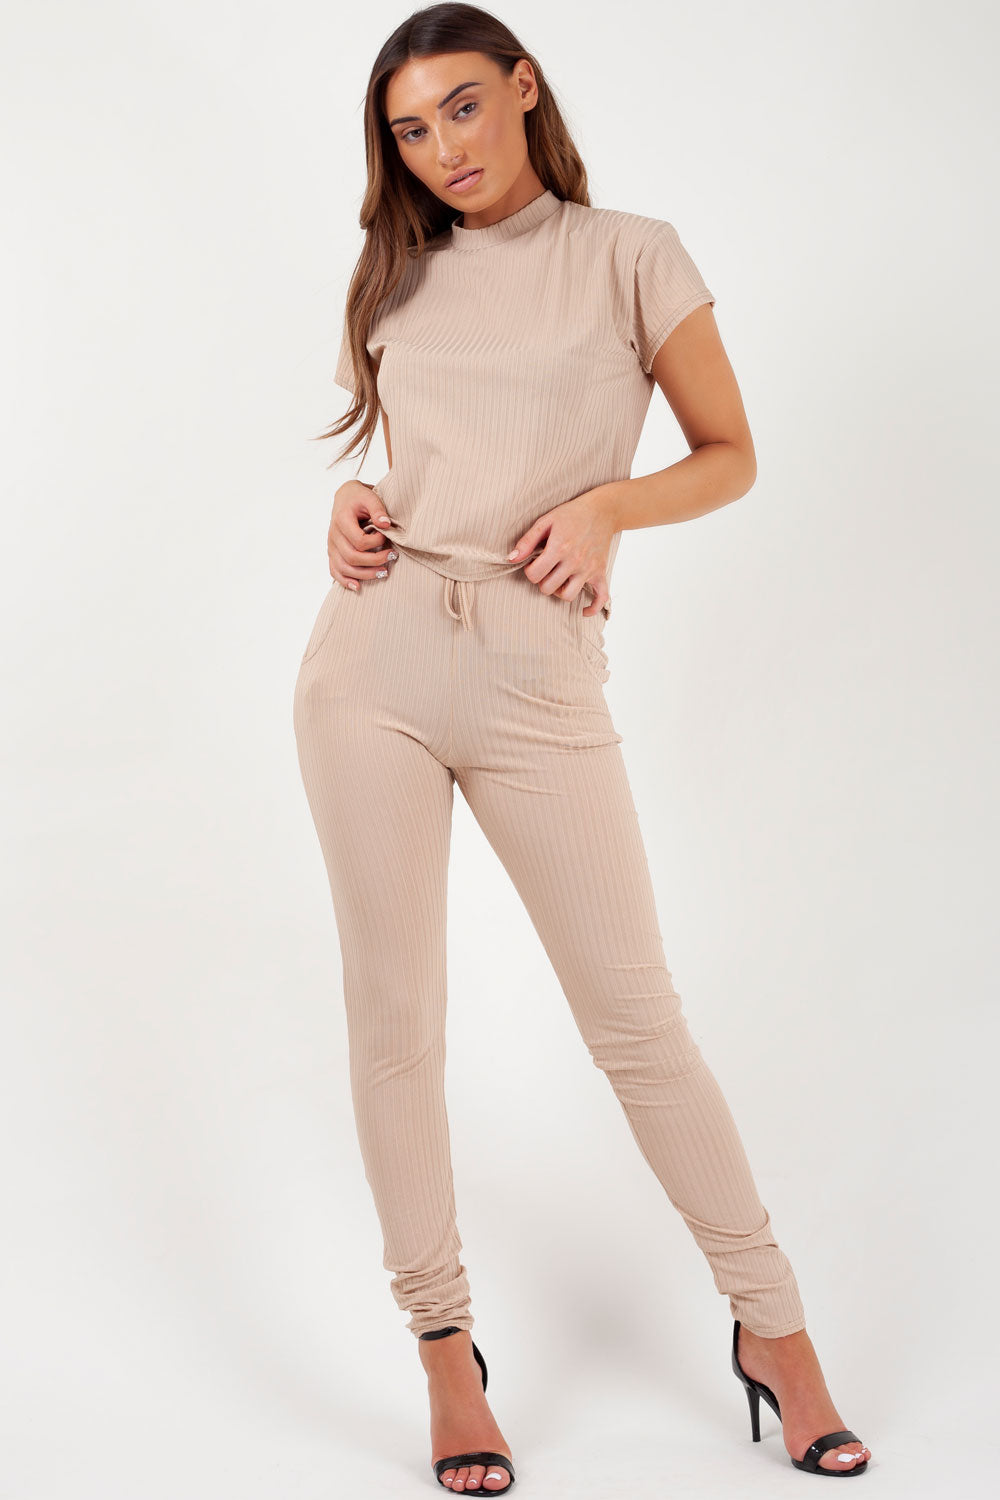 ribbed boxy lounge wear co ord